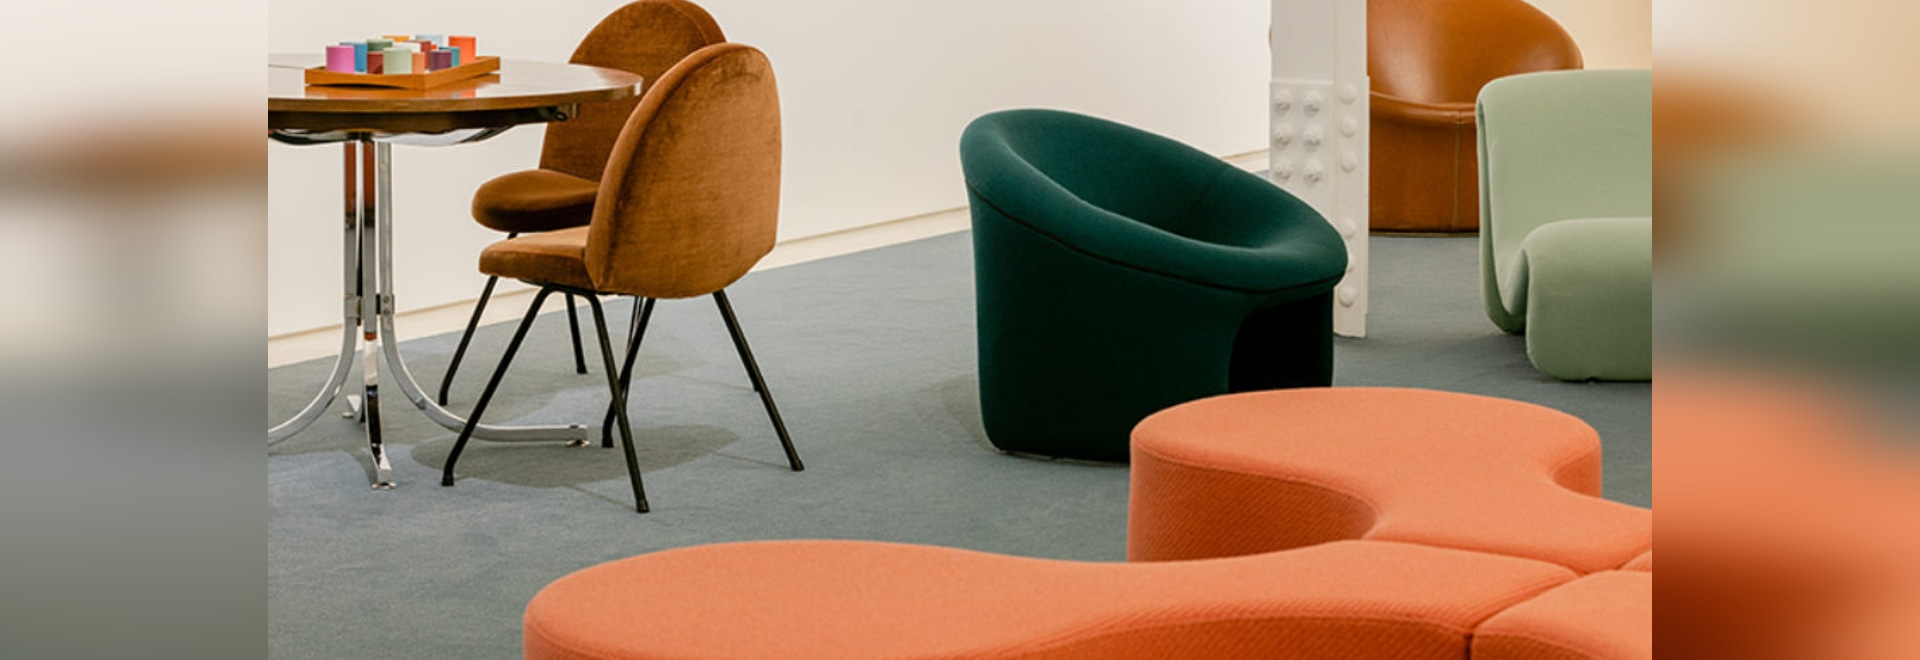 Organic forms, plush velvet, and the colors of the '60s and '70s are all on display.